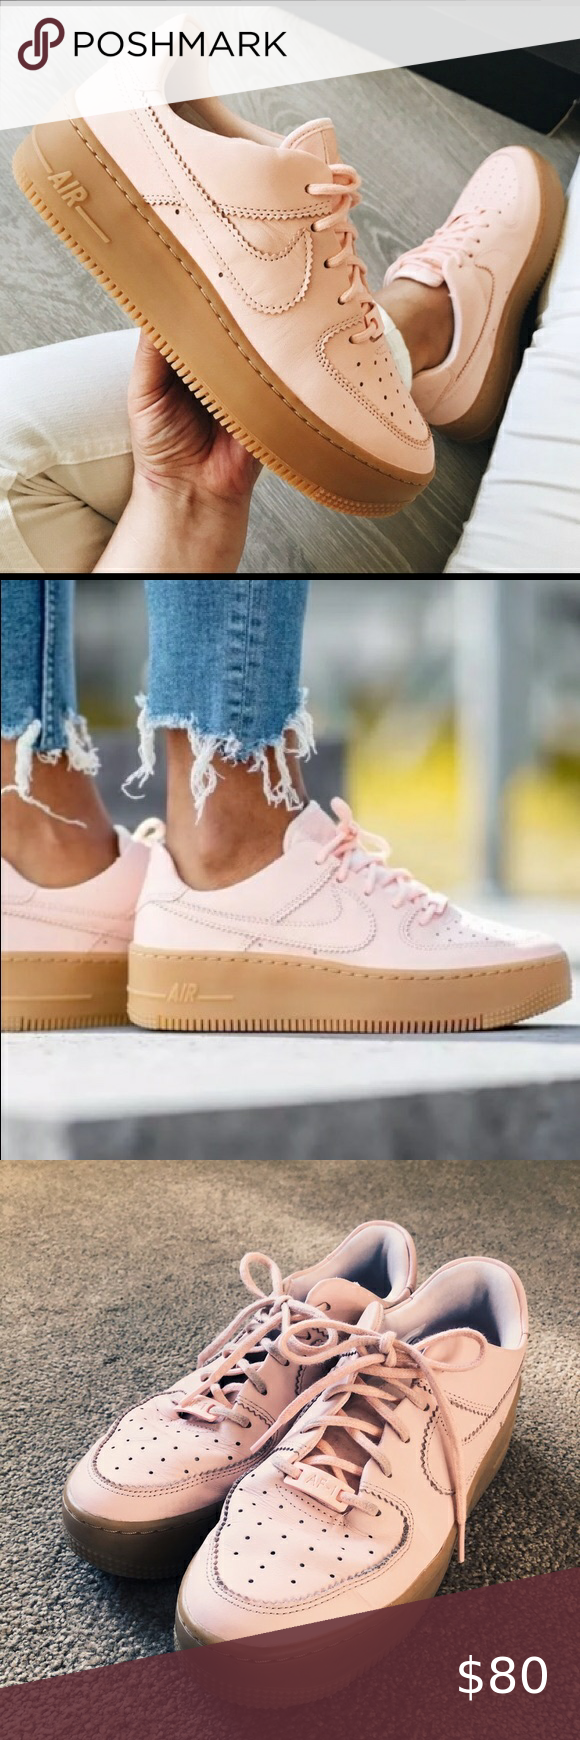 Nike Air Force 1 Sage Low W In Washed Coral Nike Shoes Air Force Nike Air Nike Air Force